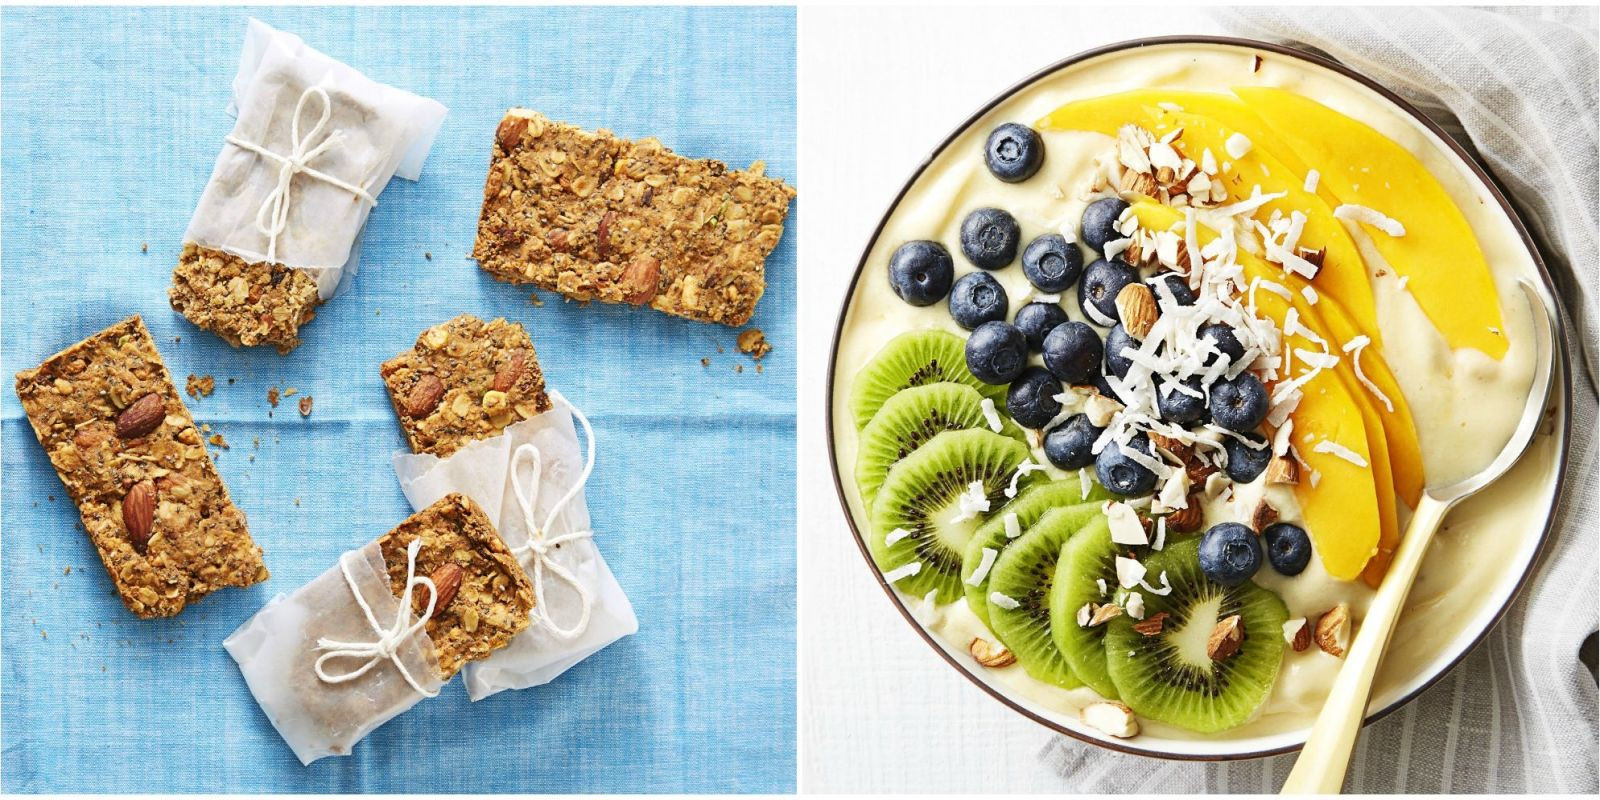 Healthy Diet Breakfast Ideas  48 Easy Healthy Breakfast Ideas Recipes for Quick and